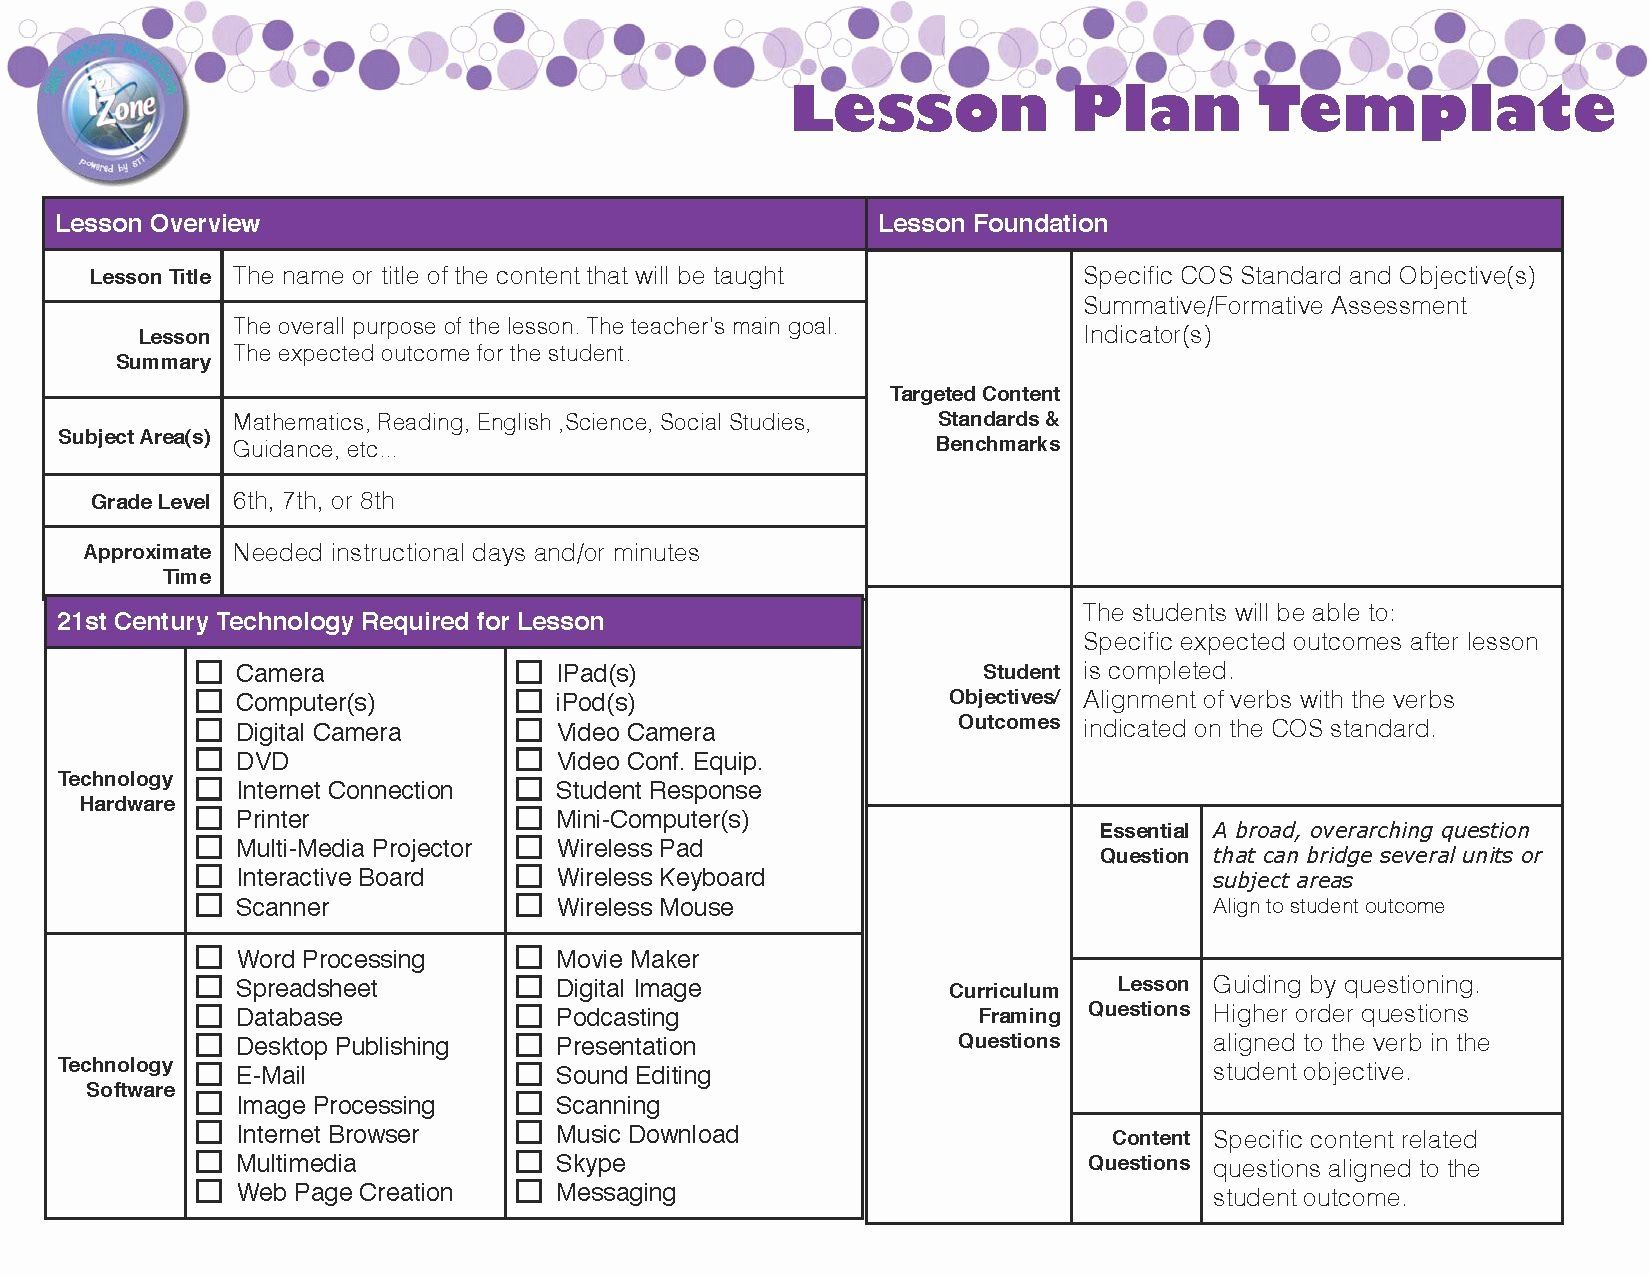 Standard Based Lesson Plan Template New Lesson Plan Template